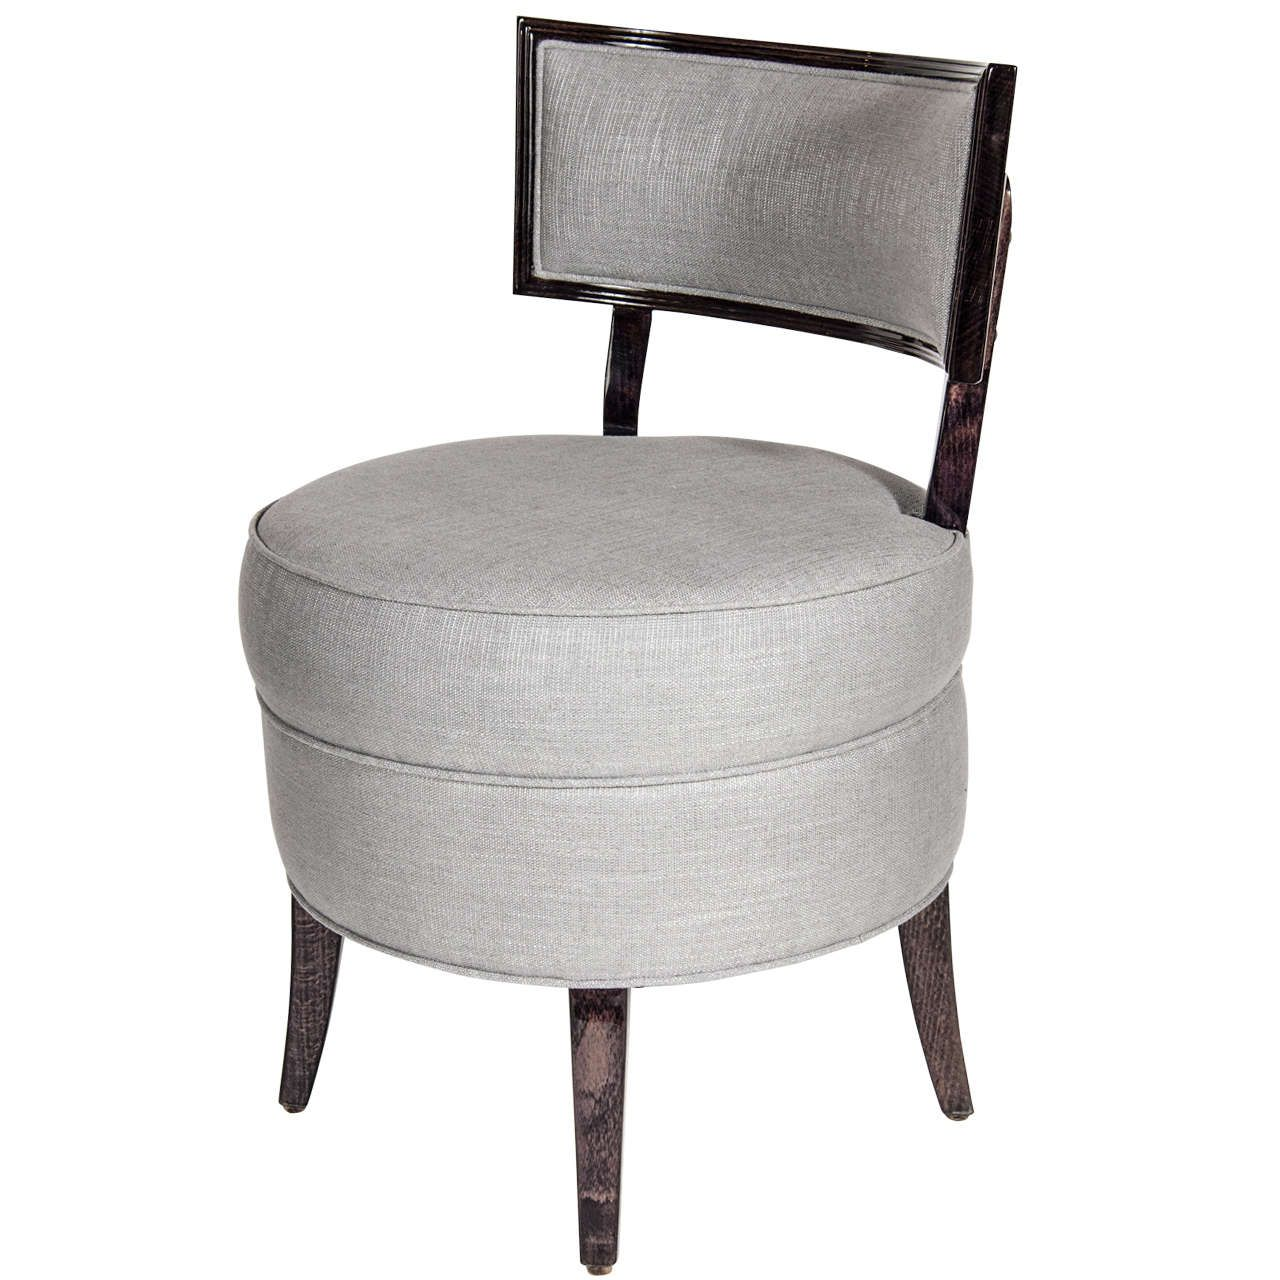 Stylish Vanity Stools and Chairs for Modern Bedroom ...